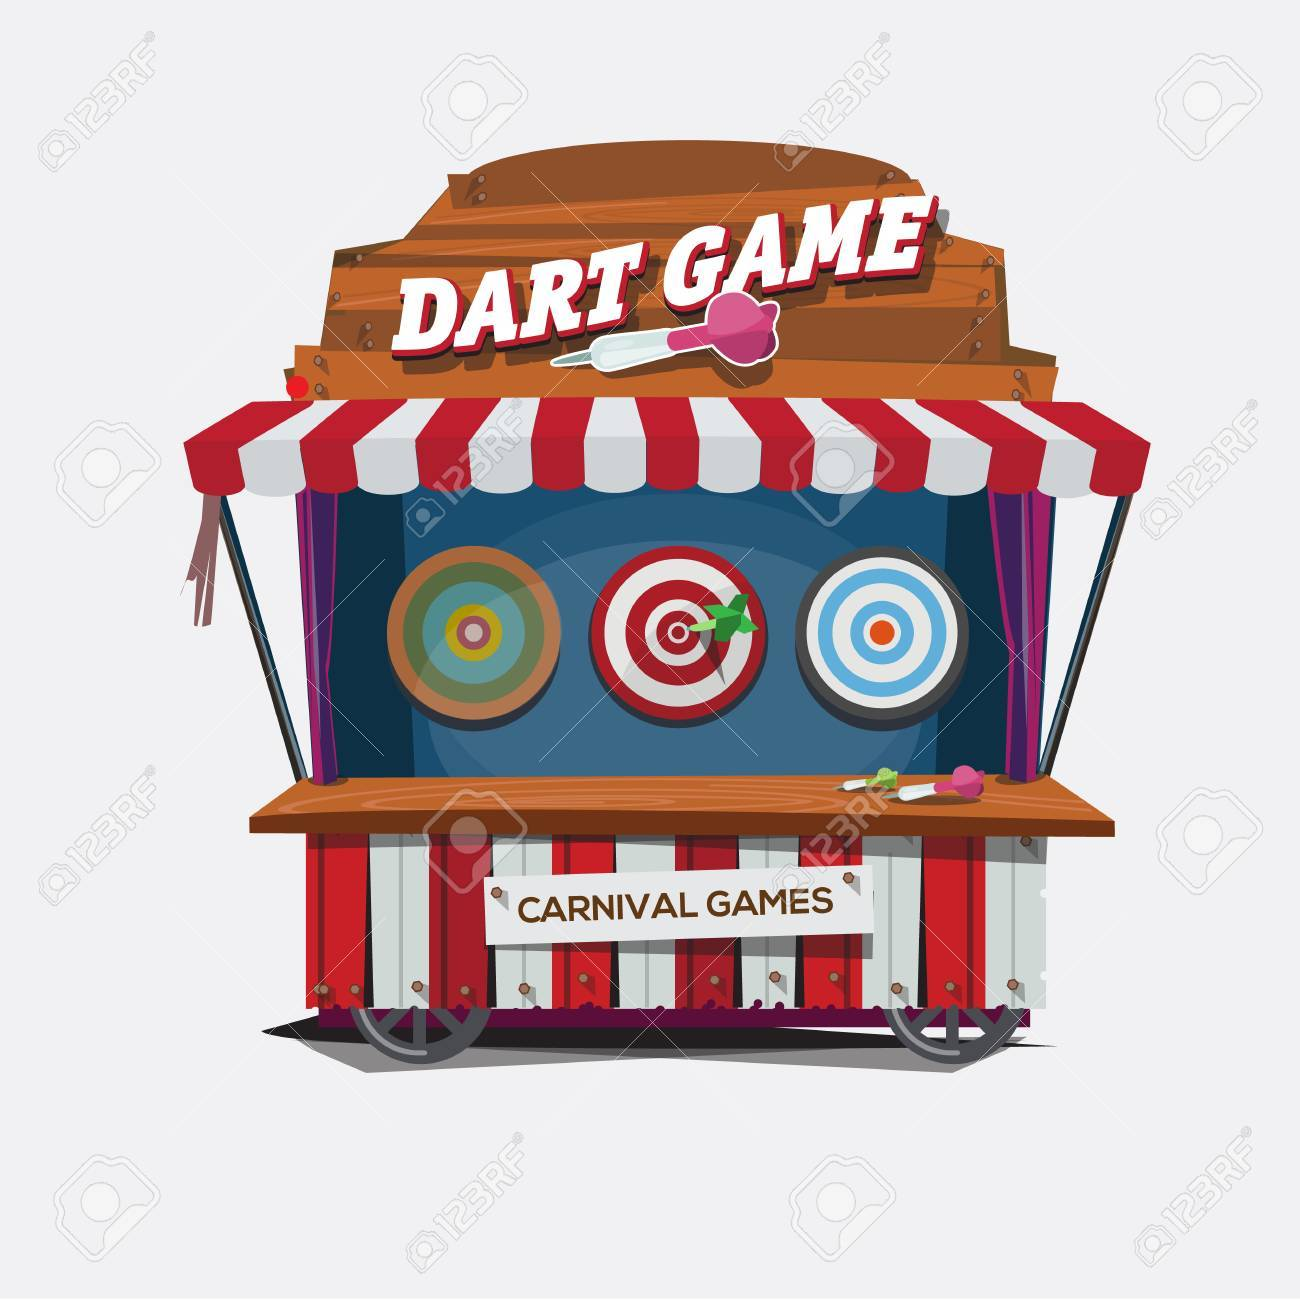 balloon dart game. carnival cart concept.